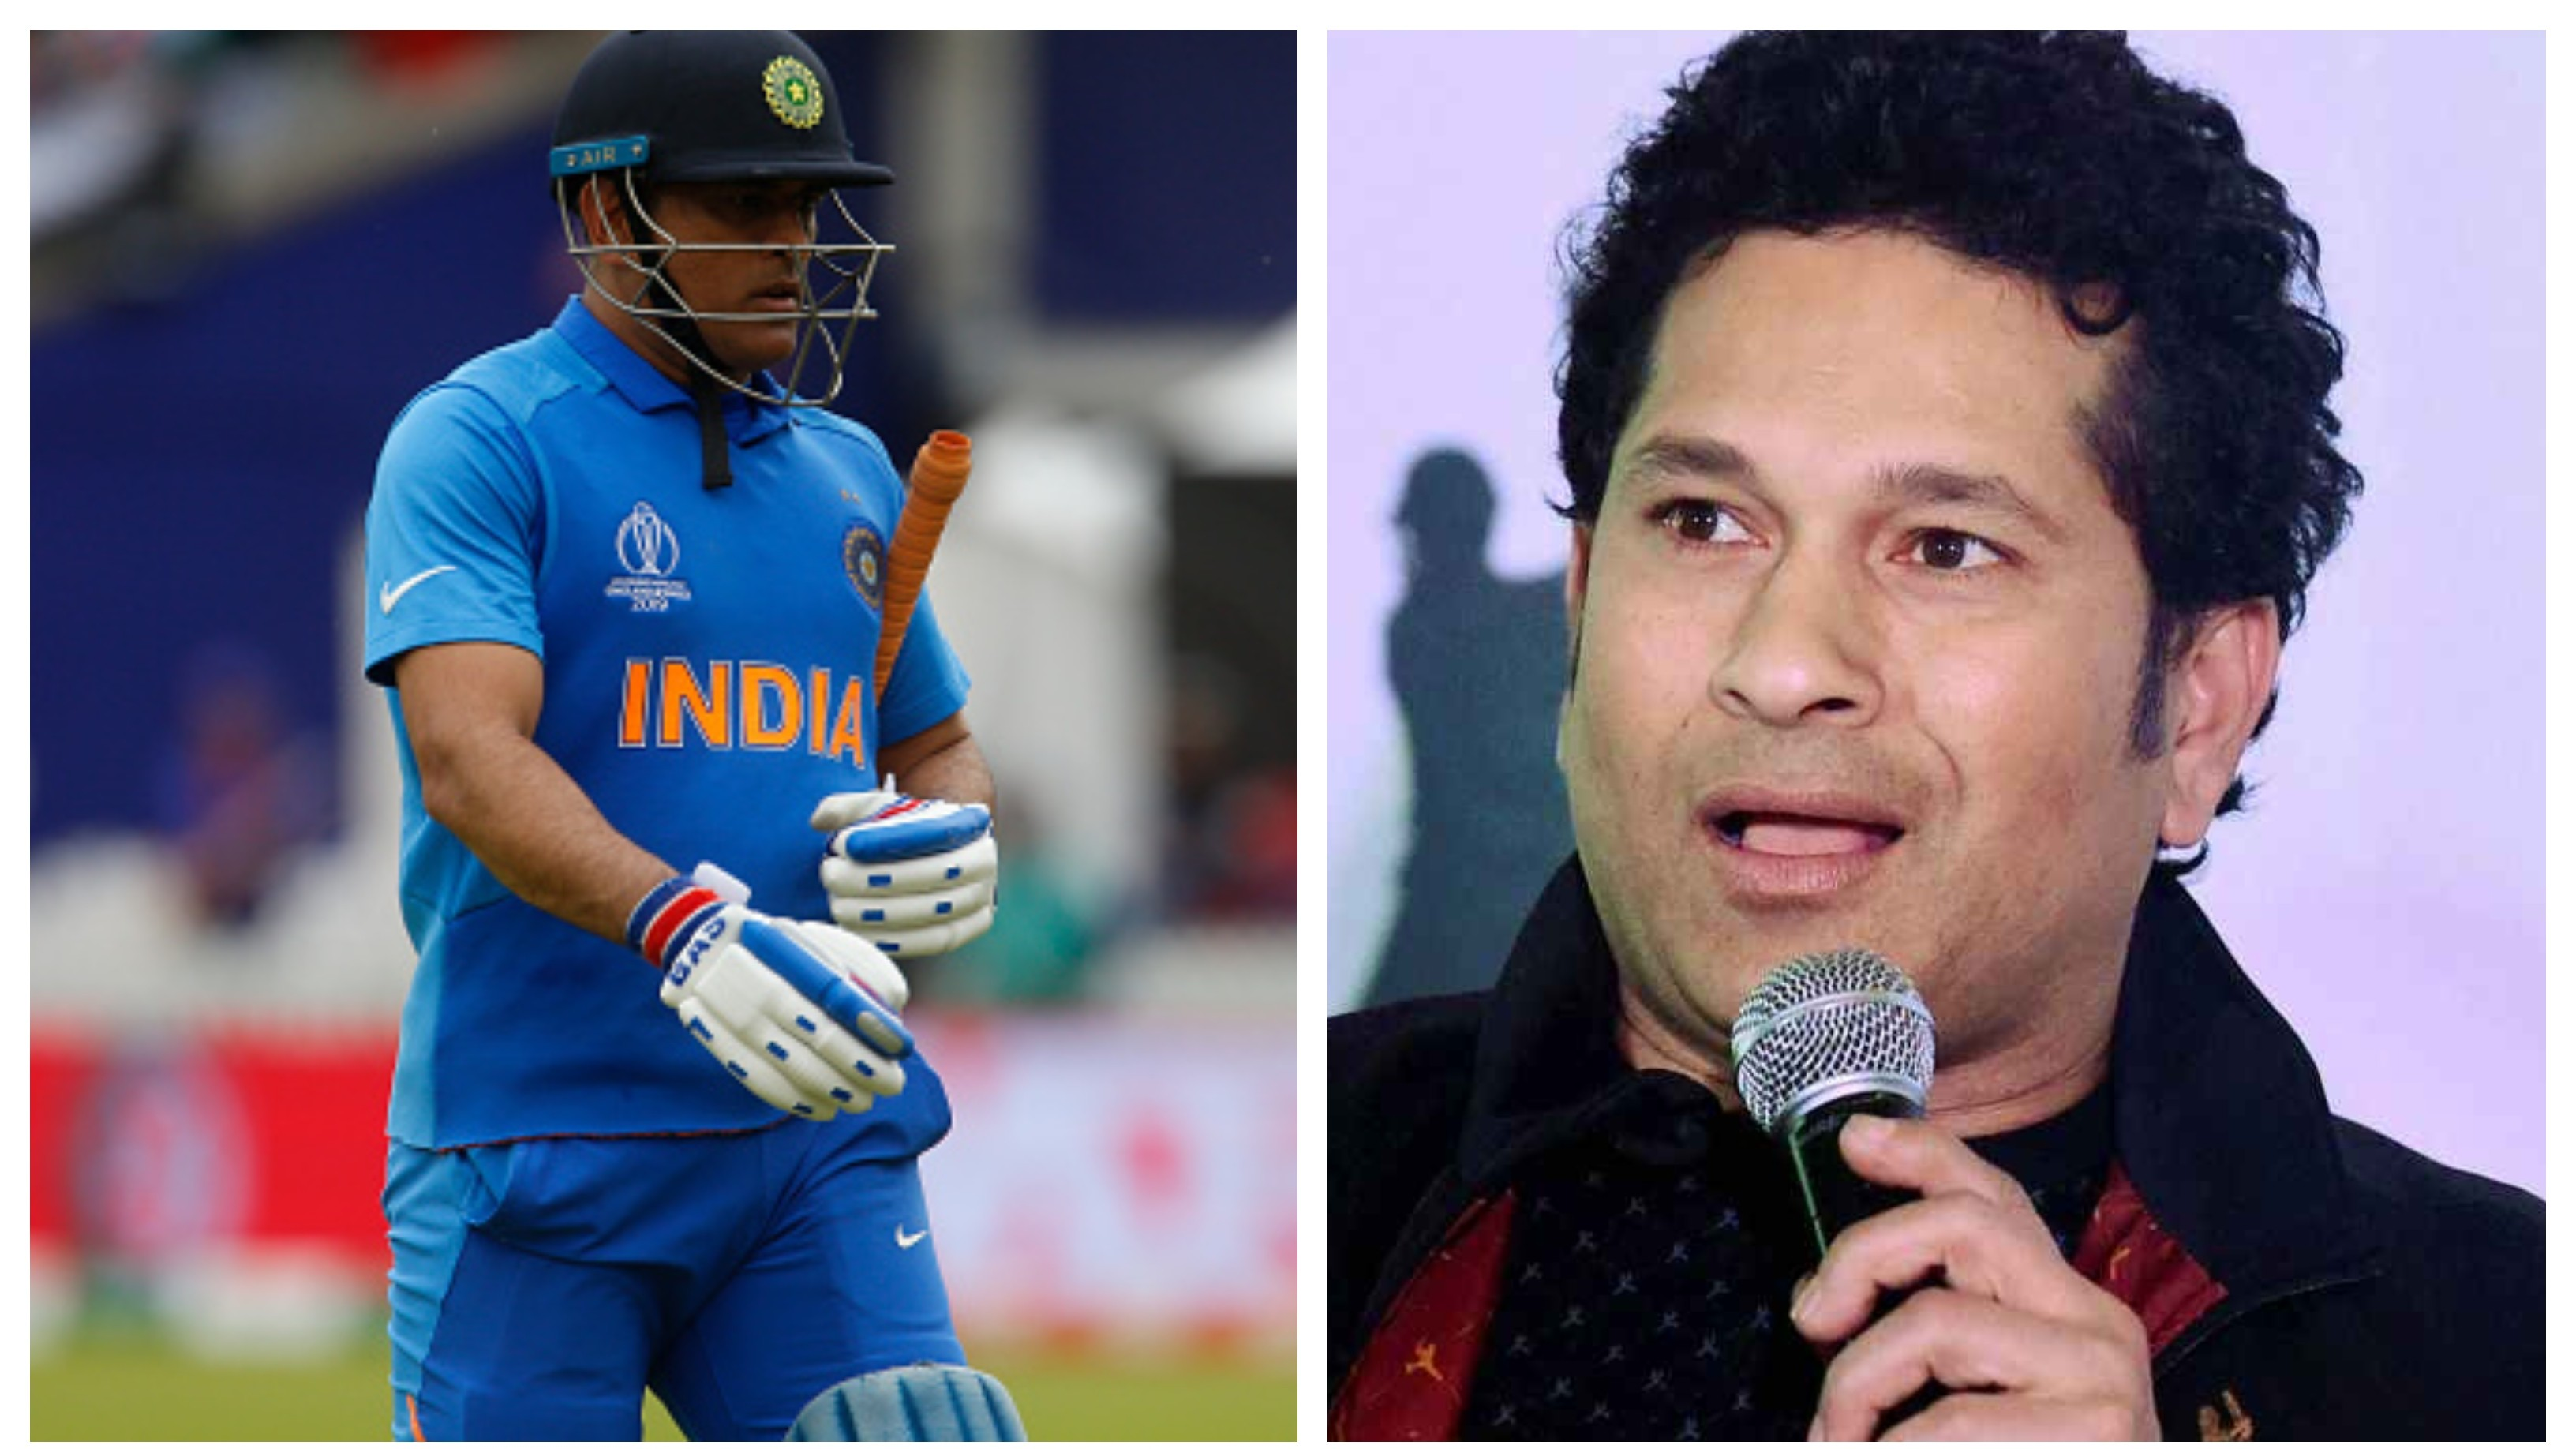 CWC 2019: Tendulkar shares his two cents on Dhoni's retirement speculation